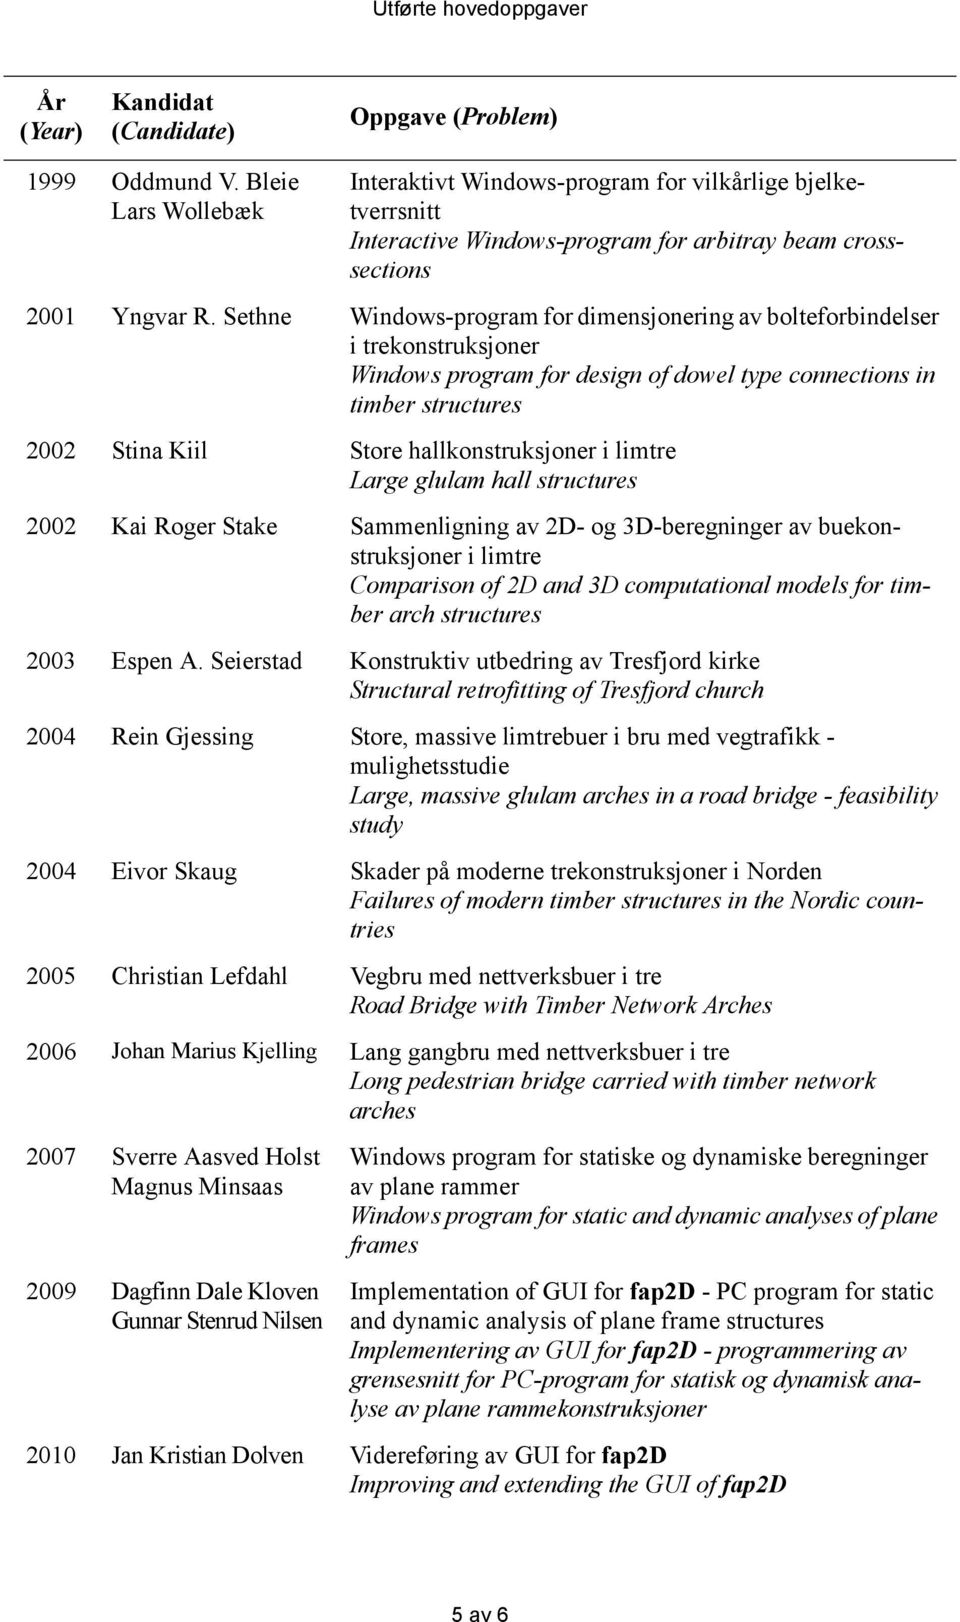 limtre Large glulam hall structures 2002 Kai Roger Stake Sammenligning av 2D- og 3D-beregninger av buekonstruksjoner i limtre Comparison of 2D and 3D computational models for timber arch structures